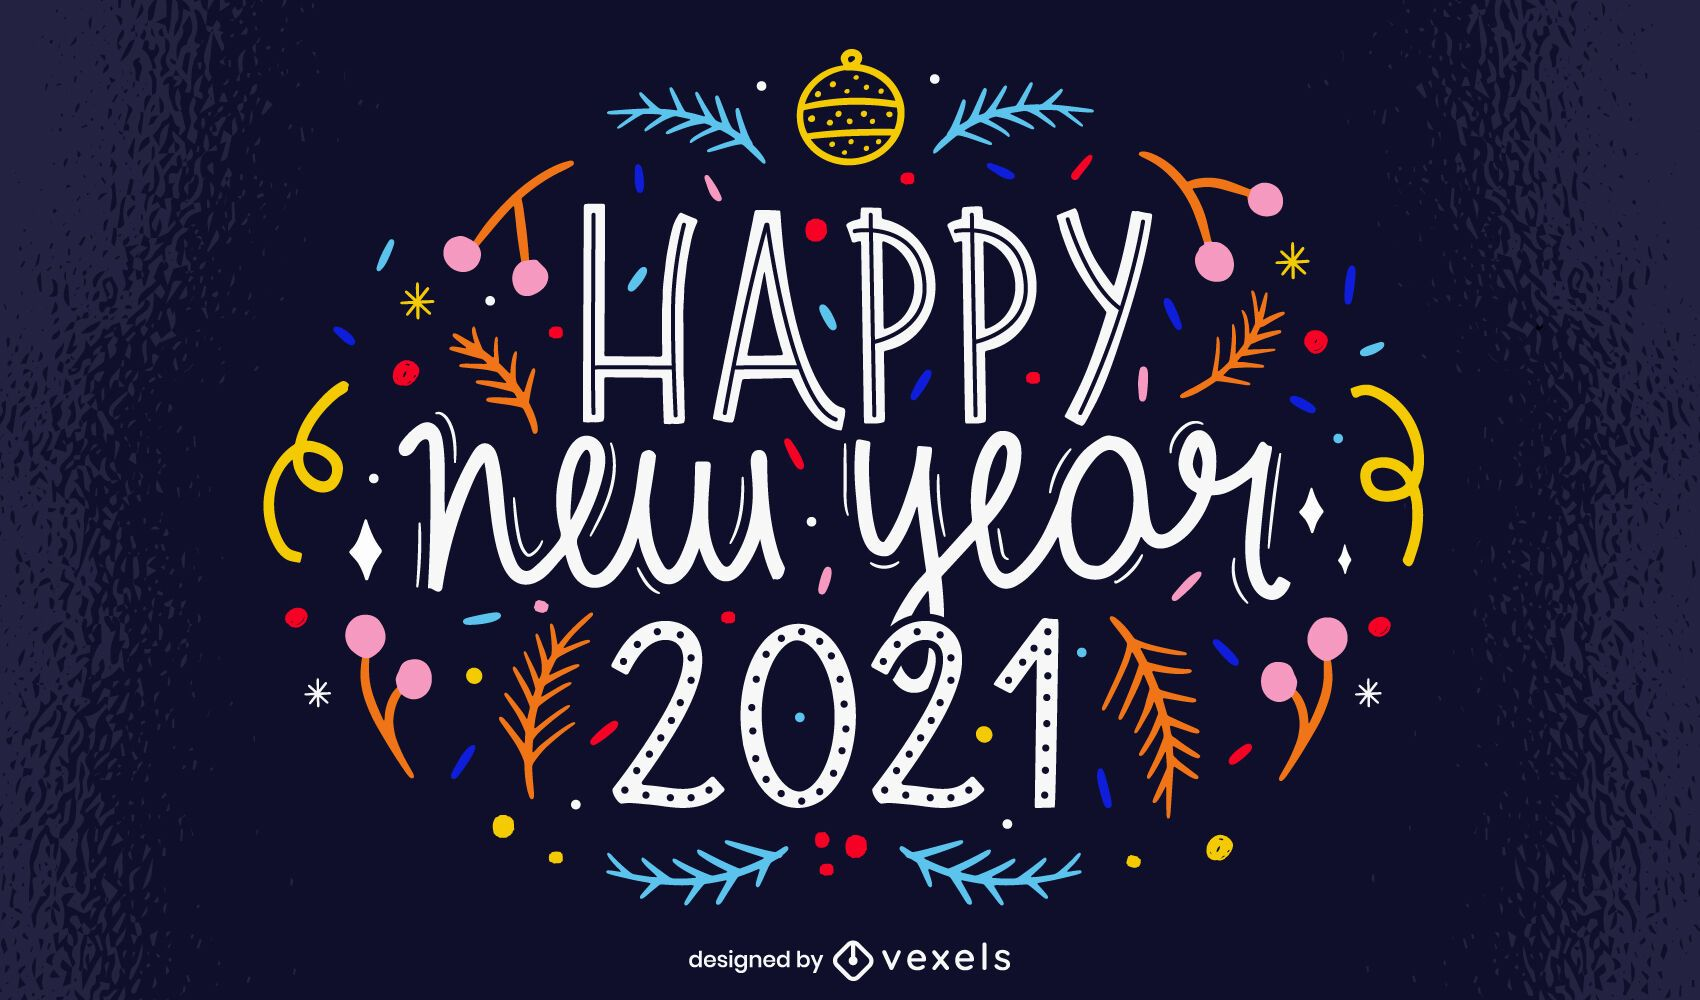 Happy New Year 2021 Lettering Design Vector Download